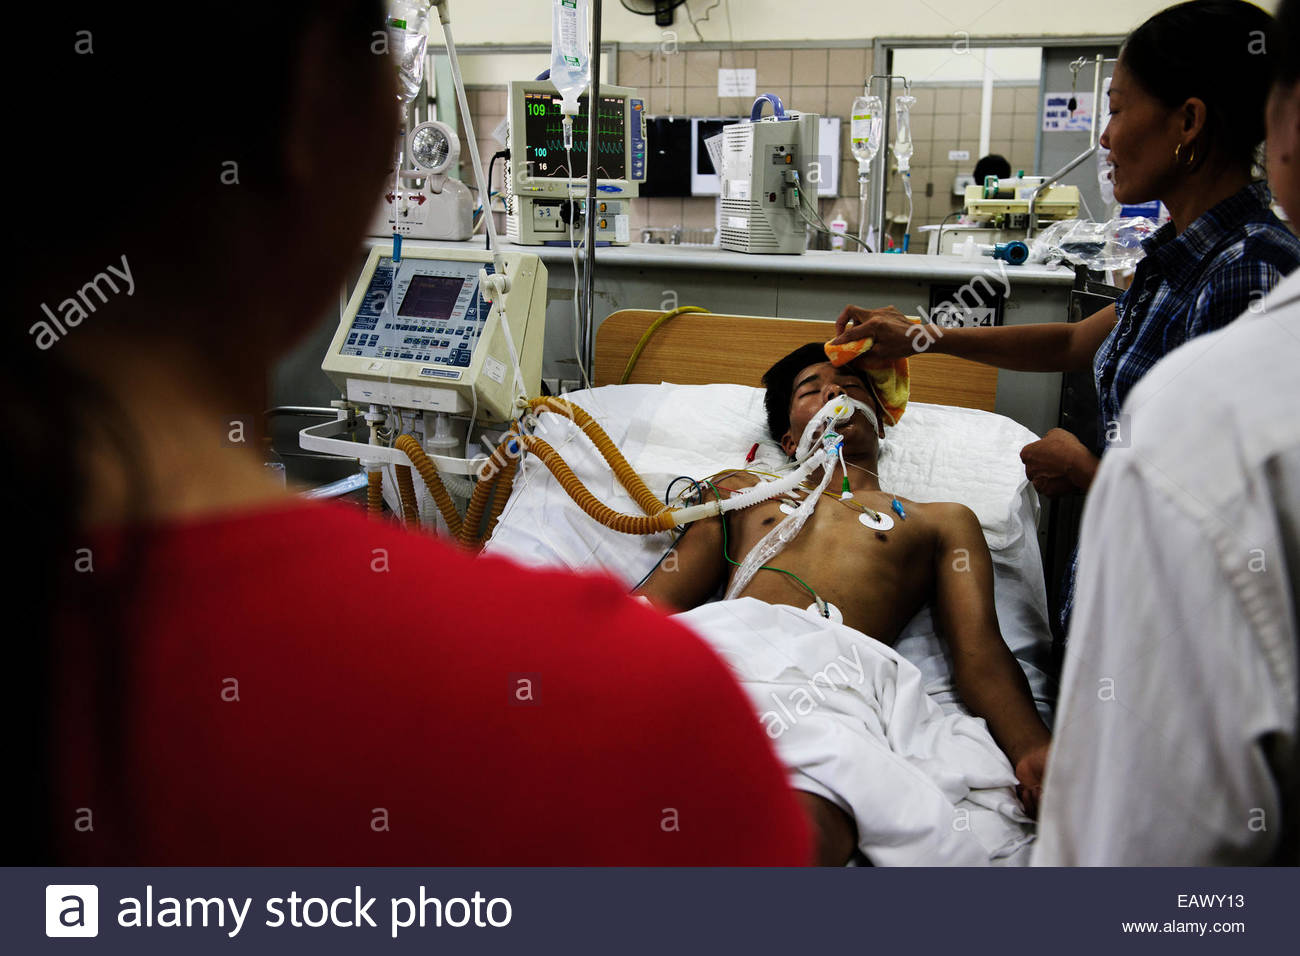 Bitten by a venomous krait as he slept in his home, a young man lies paralyzed in the hospital. - Stock Image